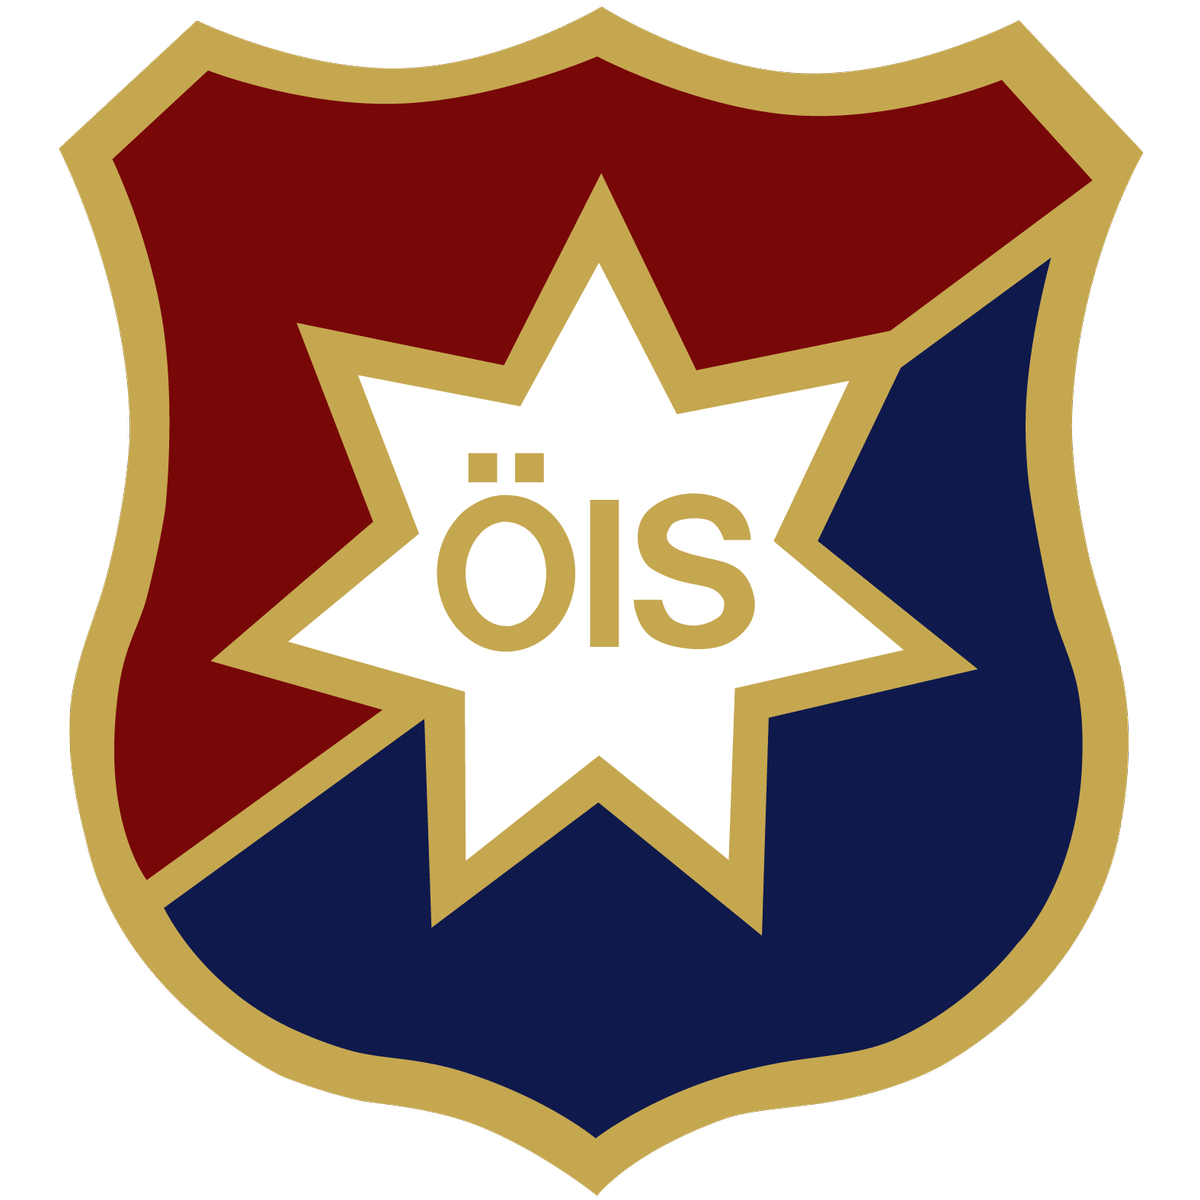 Örgryte IS emblem